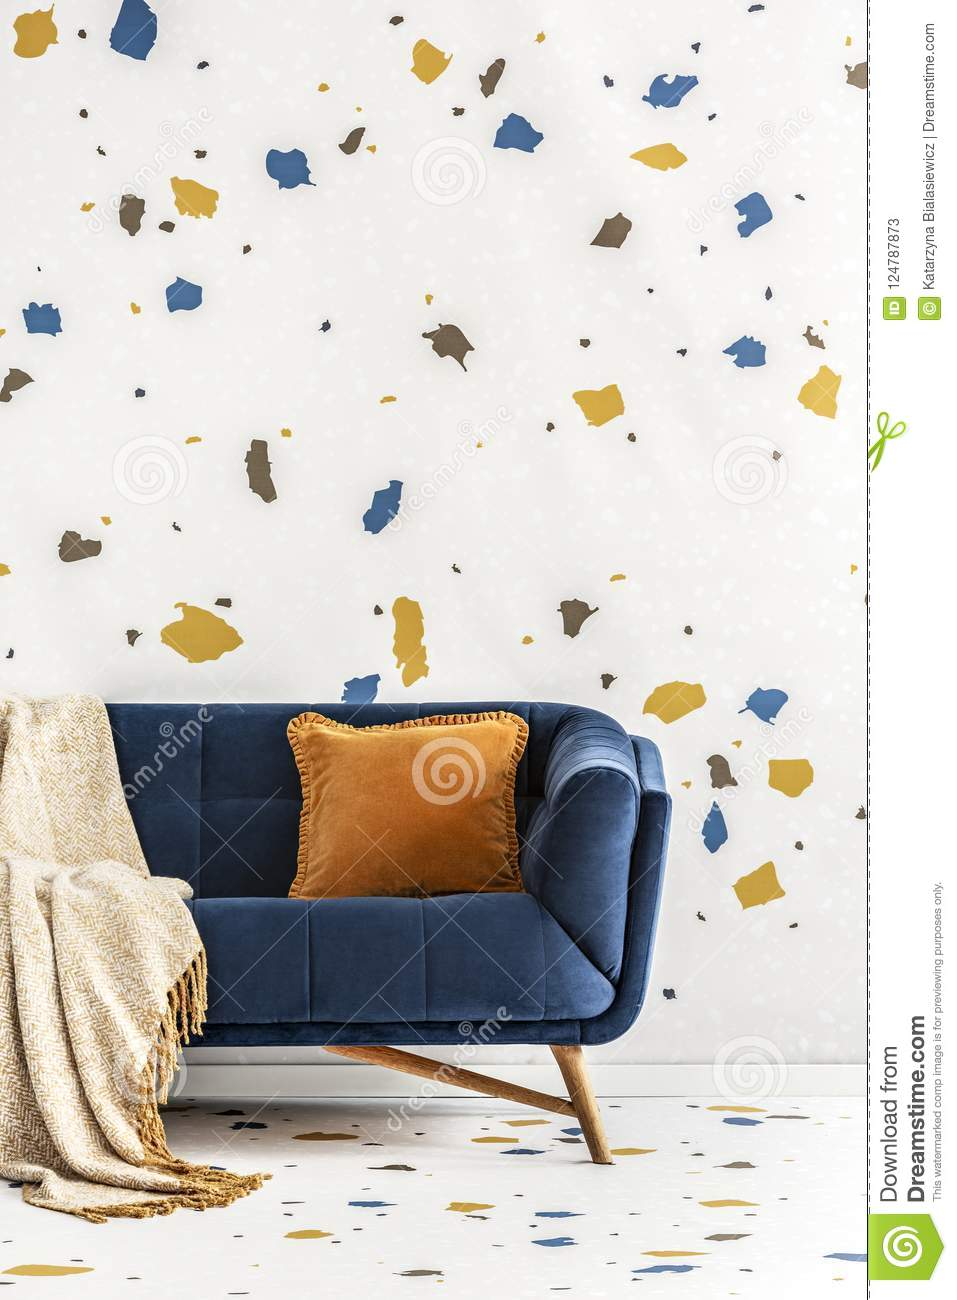 Orange cushion and blanket on blue sofa in colorful living room interior with wallpaper. Real photo